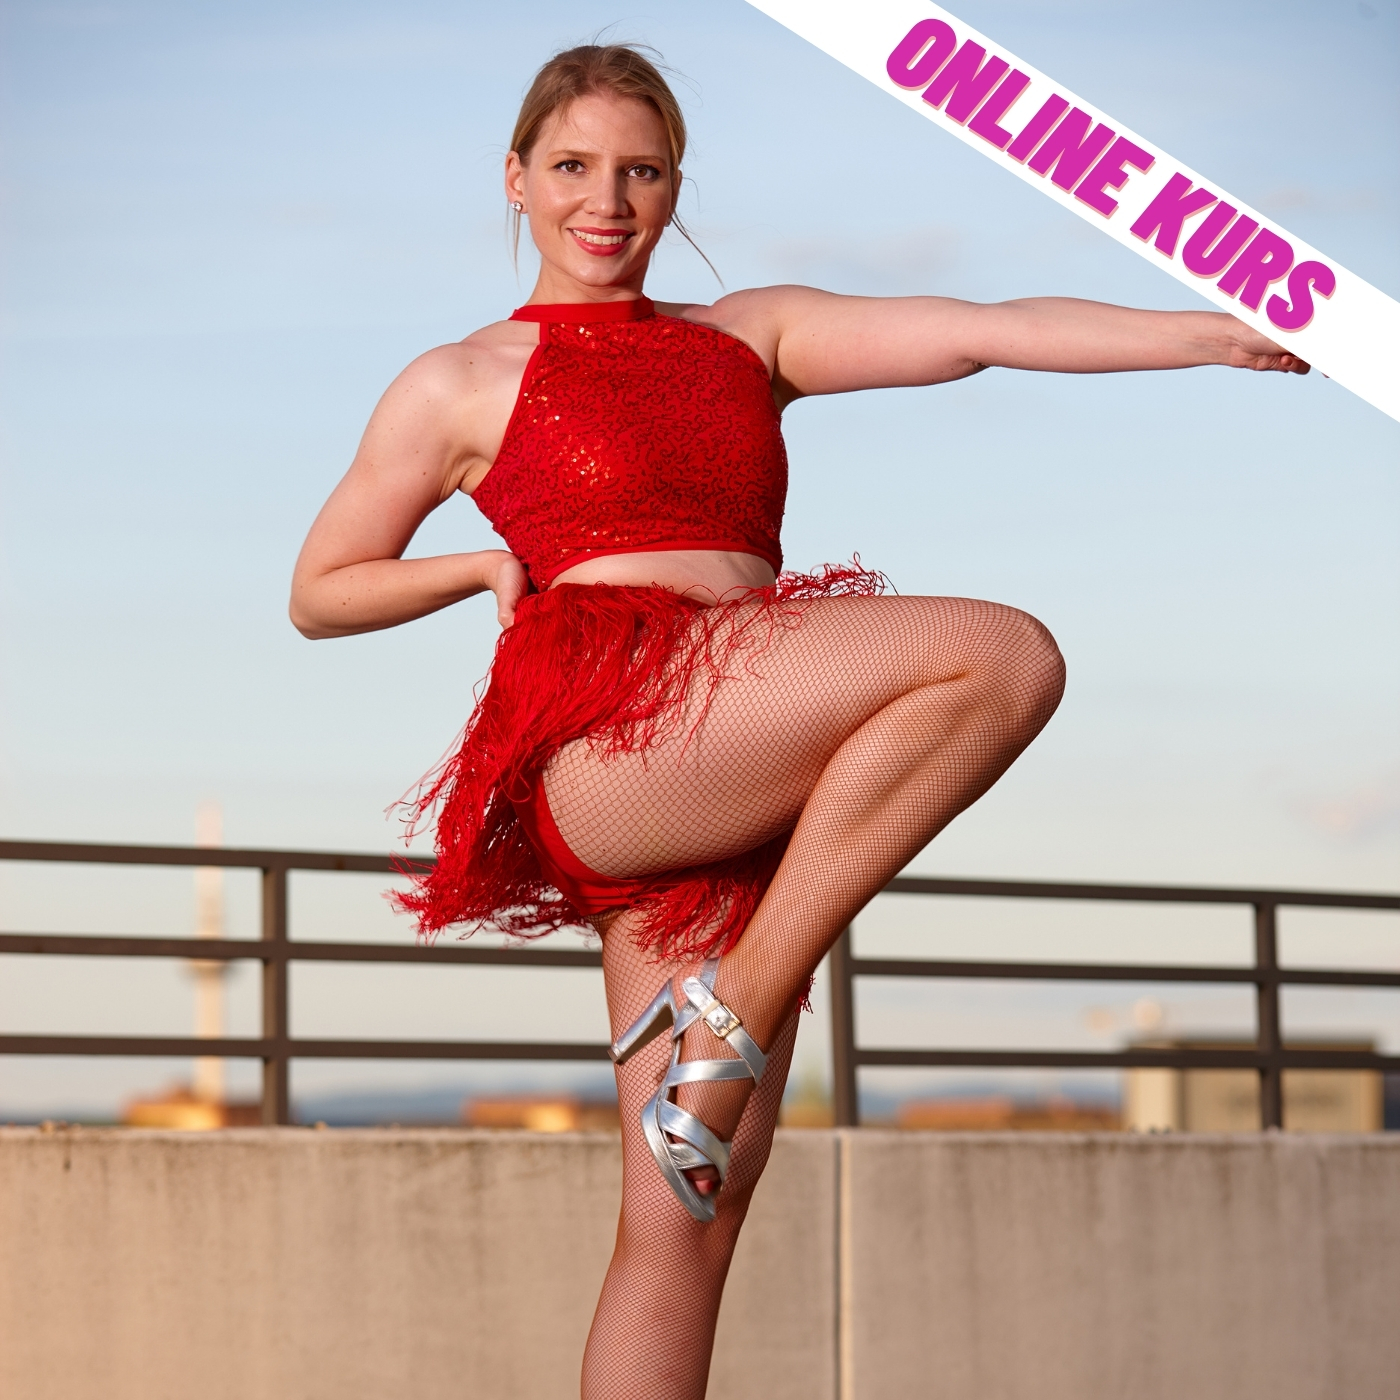 Welcome to Burlesque Onlinekurs Start:Di.04.05.21